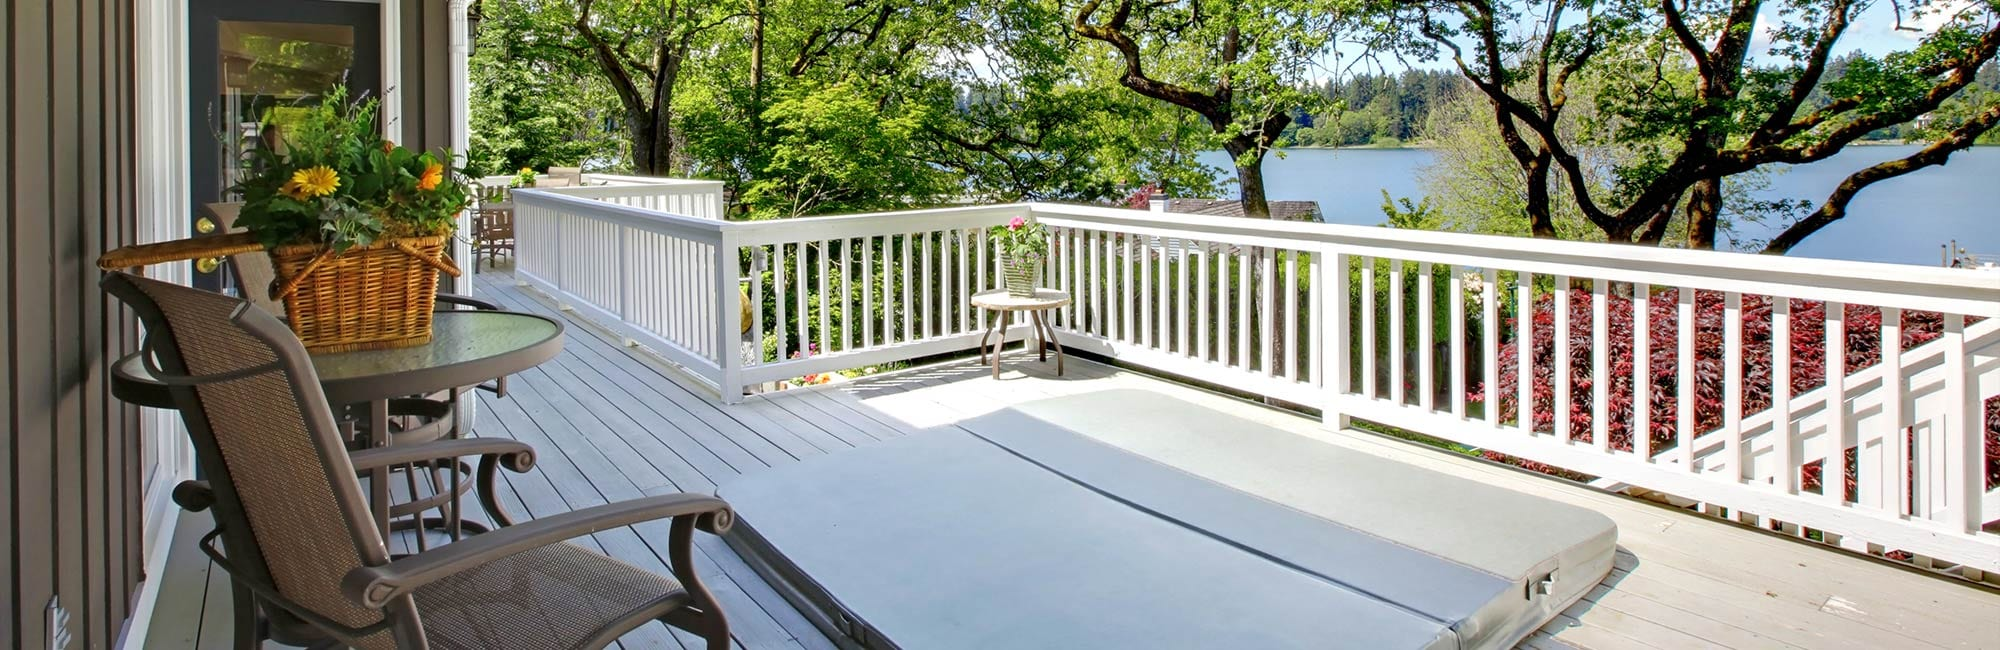 vacation home deck with lake view